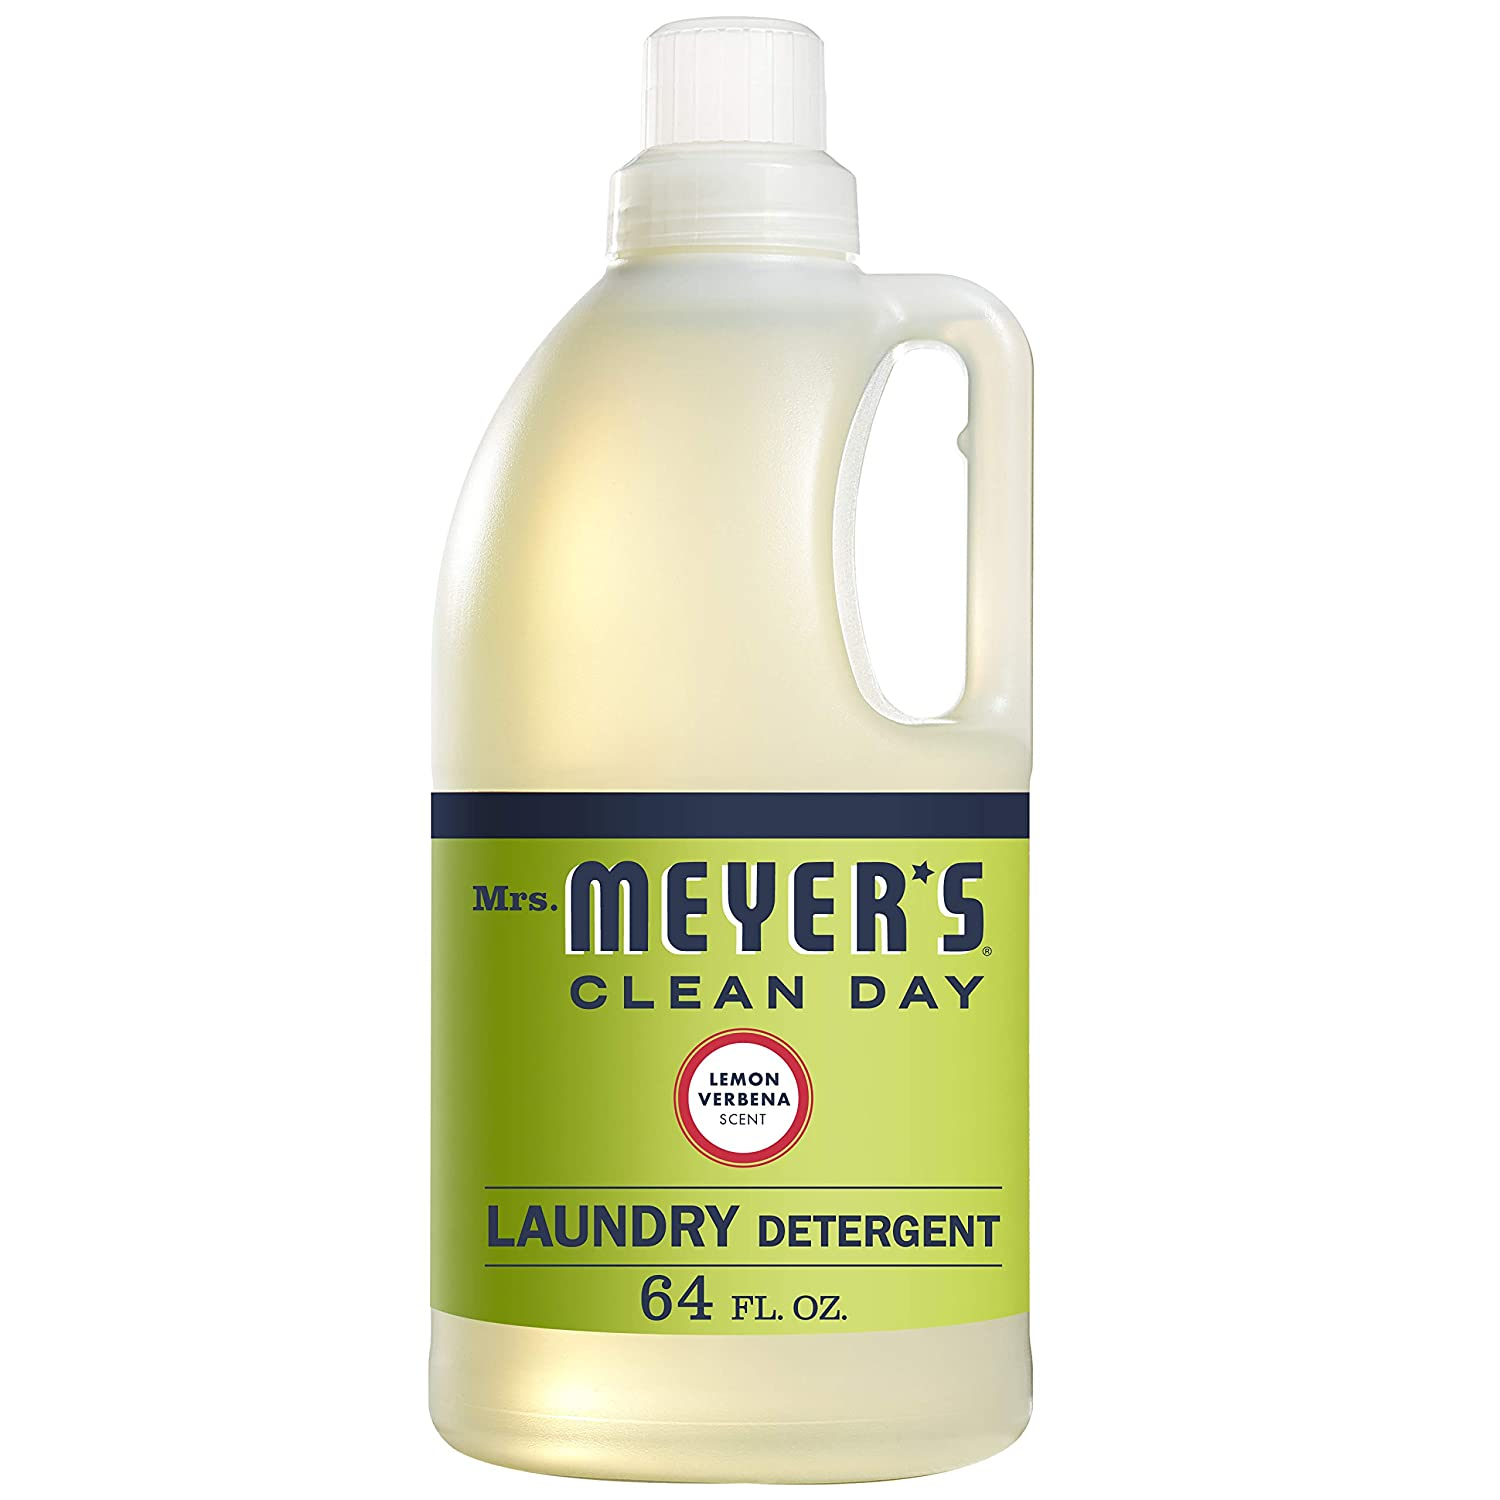 Mrs. Meyer's Clean Day Liquid Laundry Detergent, Cruelty Free and Biodegradable Formula, Lemon Verbena Scent, 64 oz